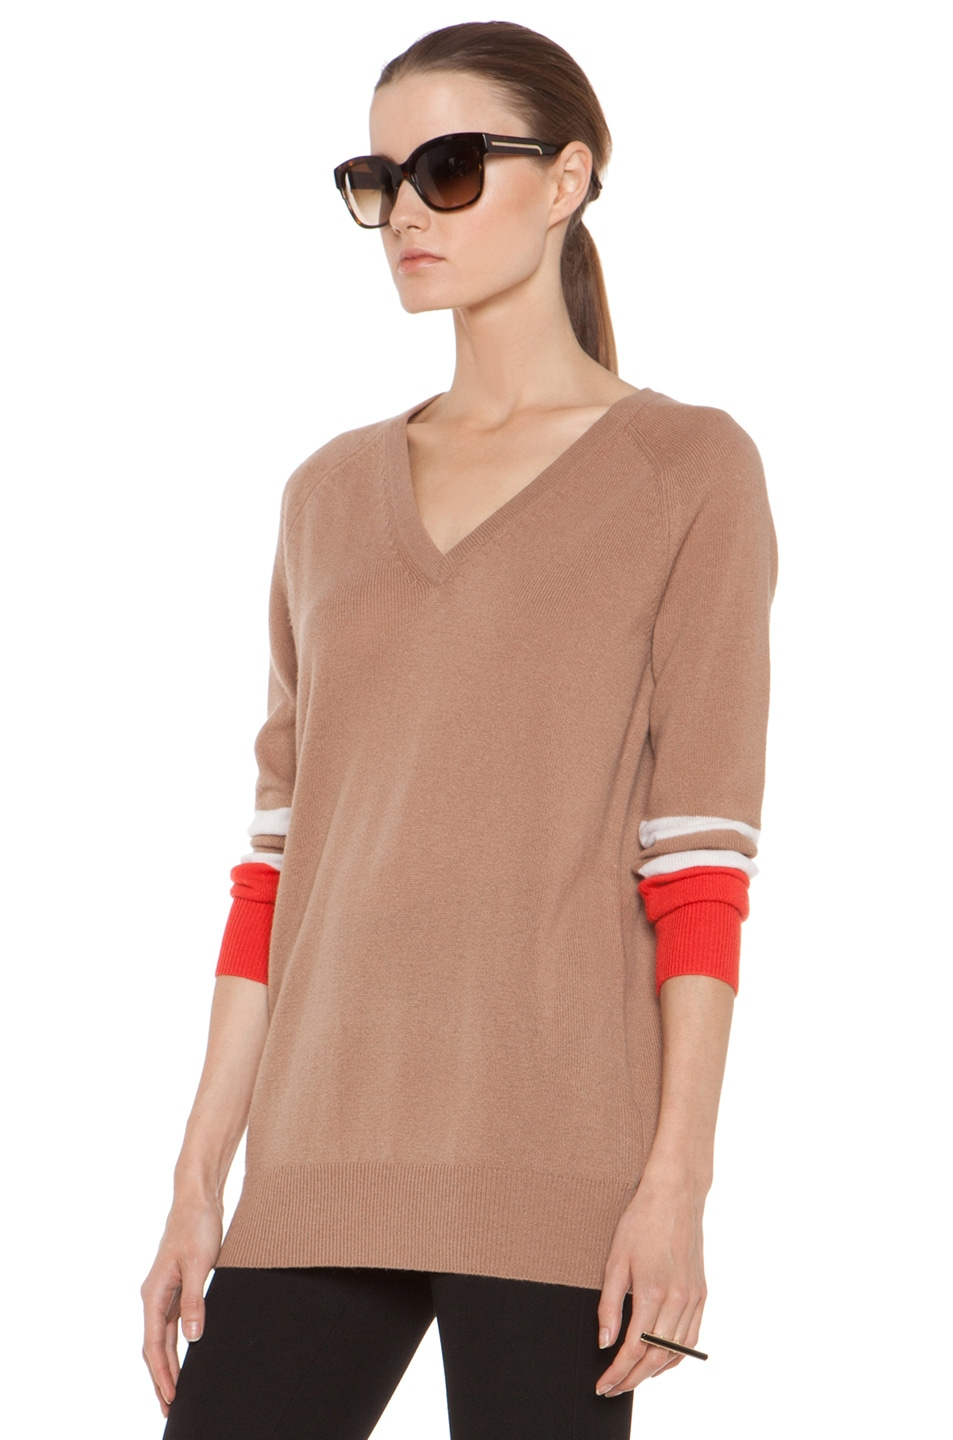 Image 3 of Equipment Asher V Neck Cashmere Colorblock Pullover in Camel